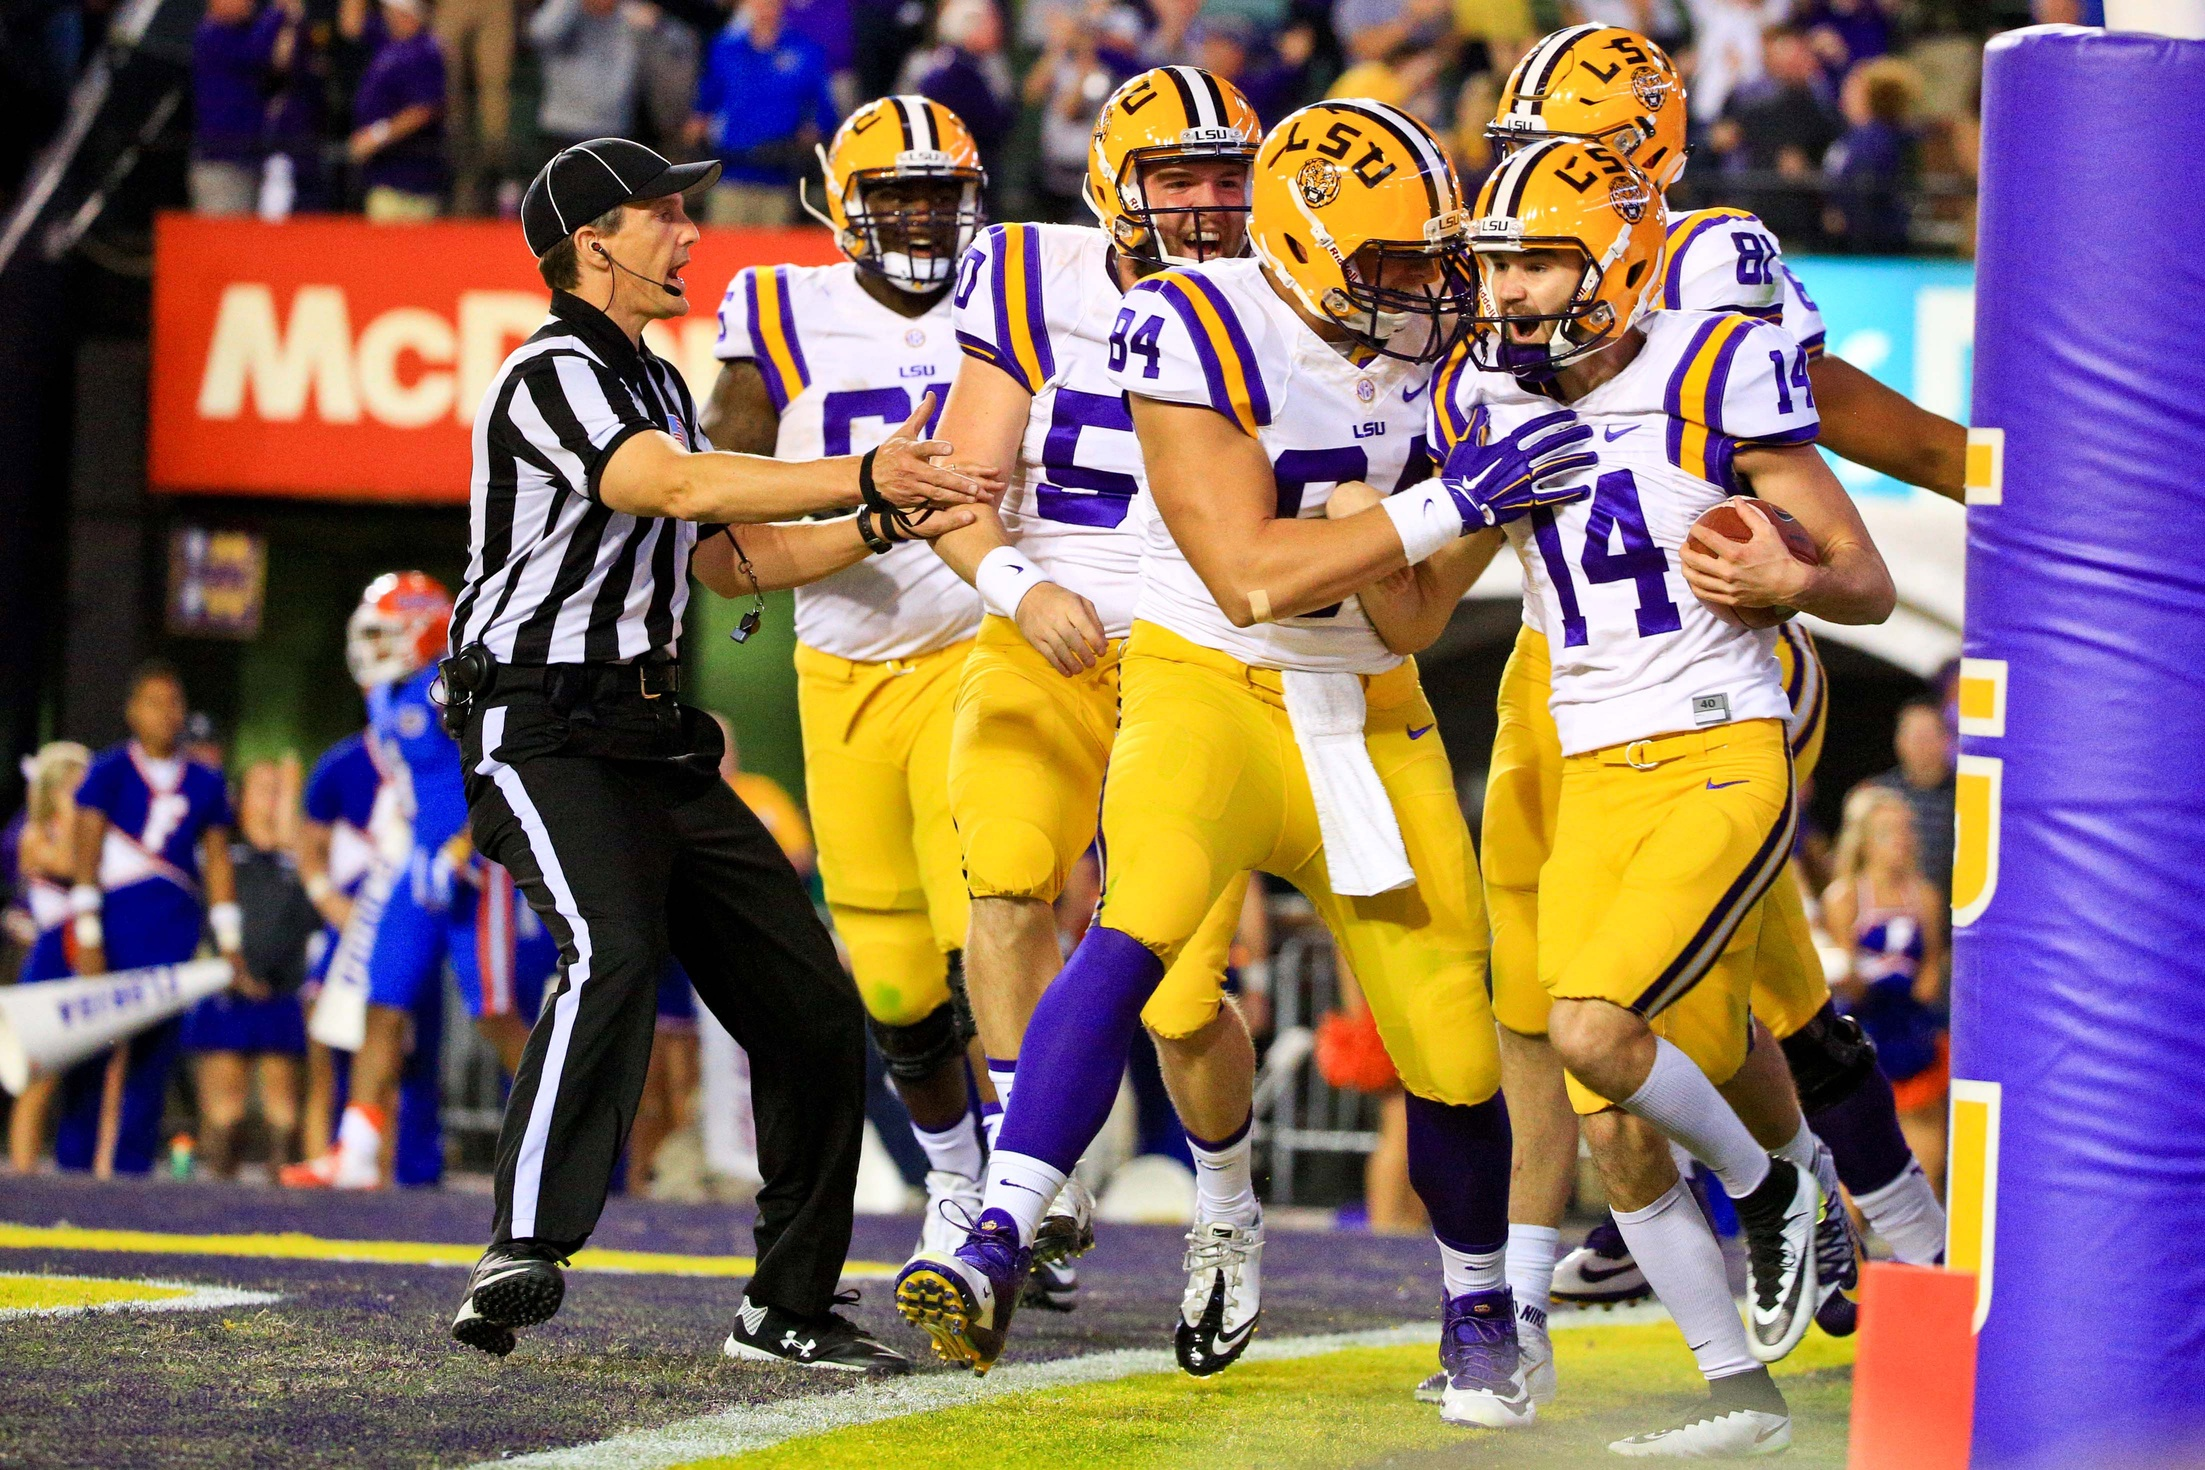 Lsu And Alabama Now The Chased In The Sec West